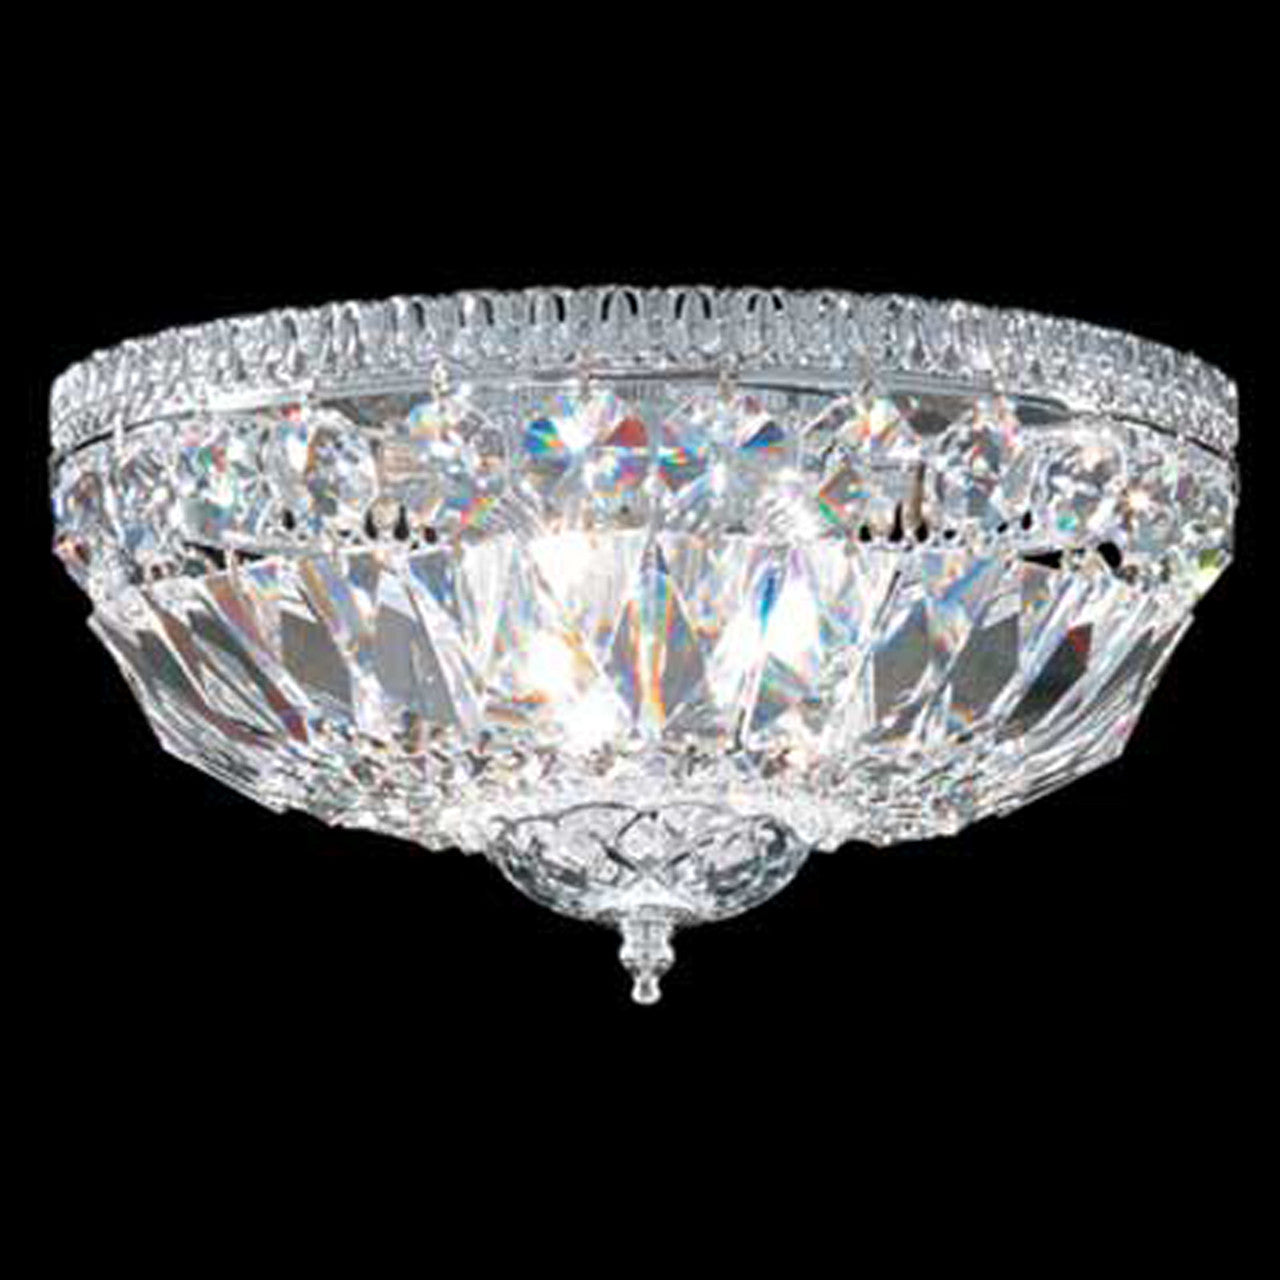 Europa 12 Flush Mount Crystal Basket X 6